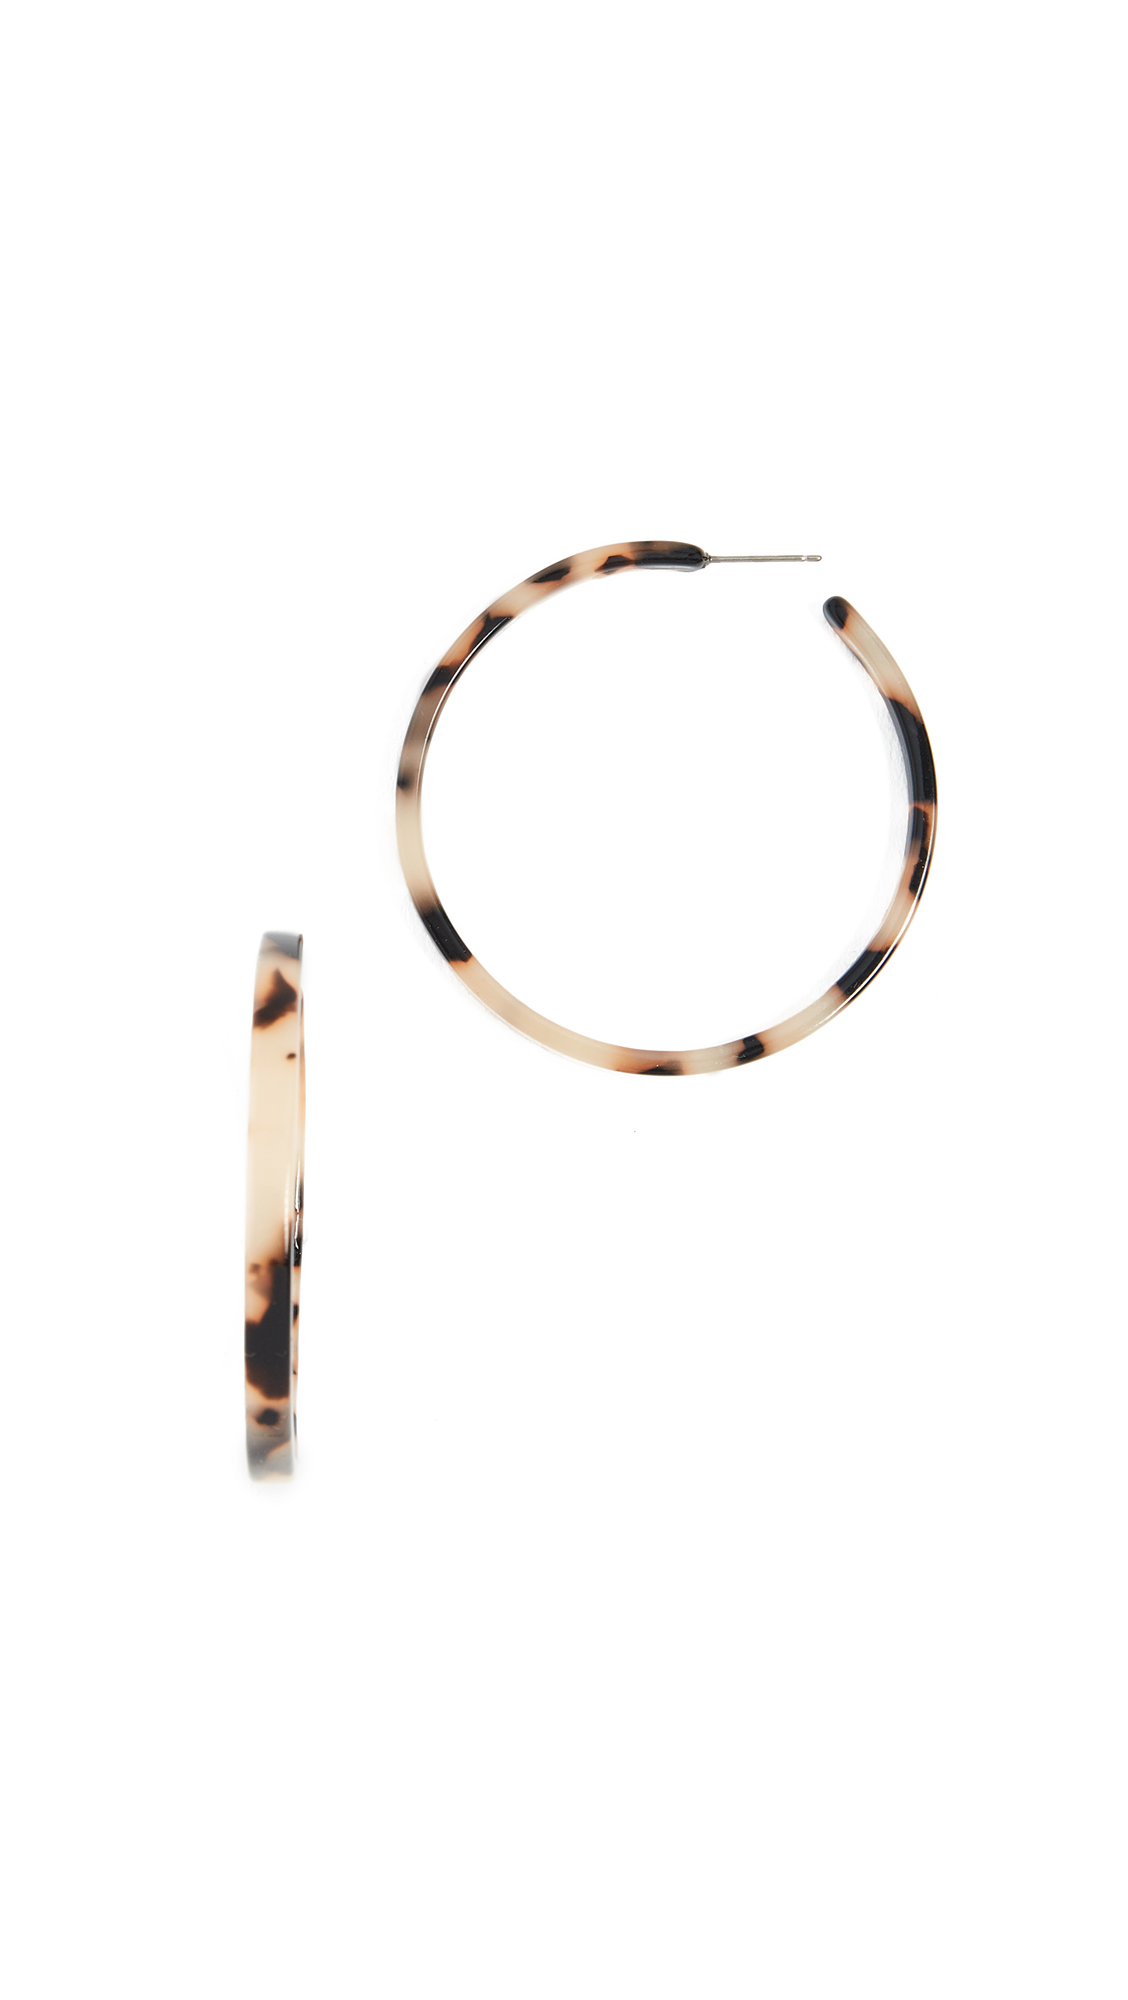 x blush tortoise shop machete hoops garmentory earrings sale margot